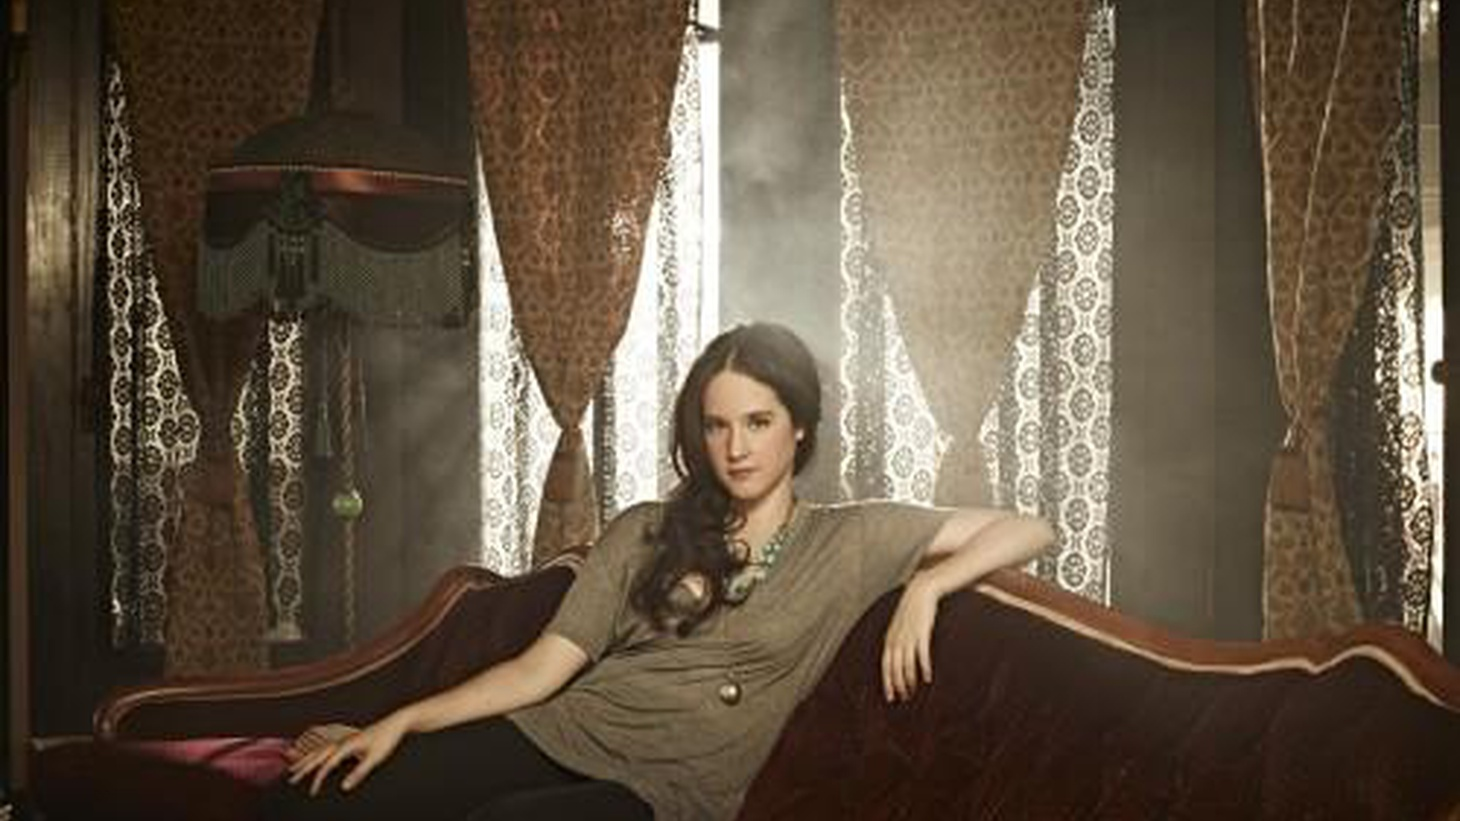 Mexican actress turned singer-songwriter Ximena Sariñana transcends language barriers with songs from her new album...